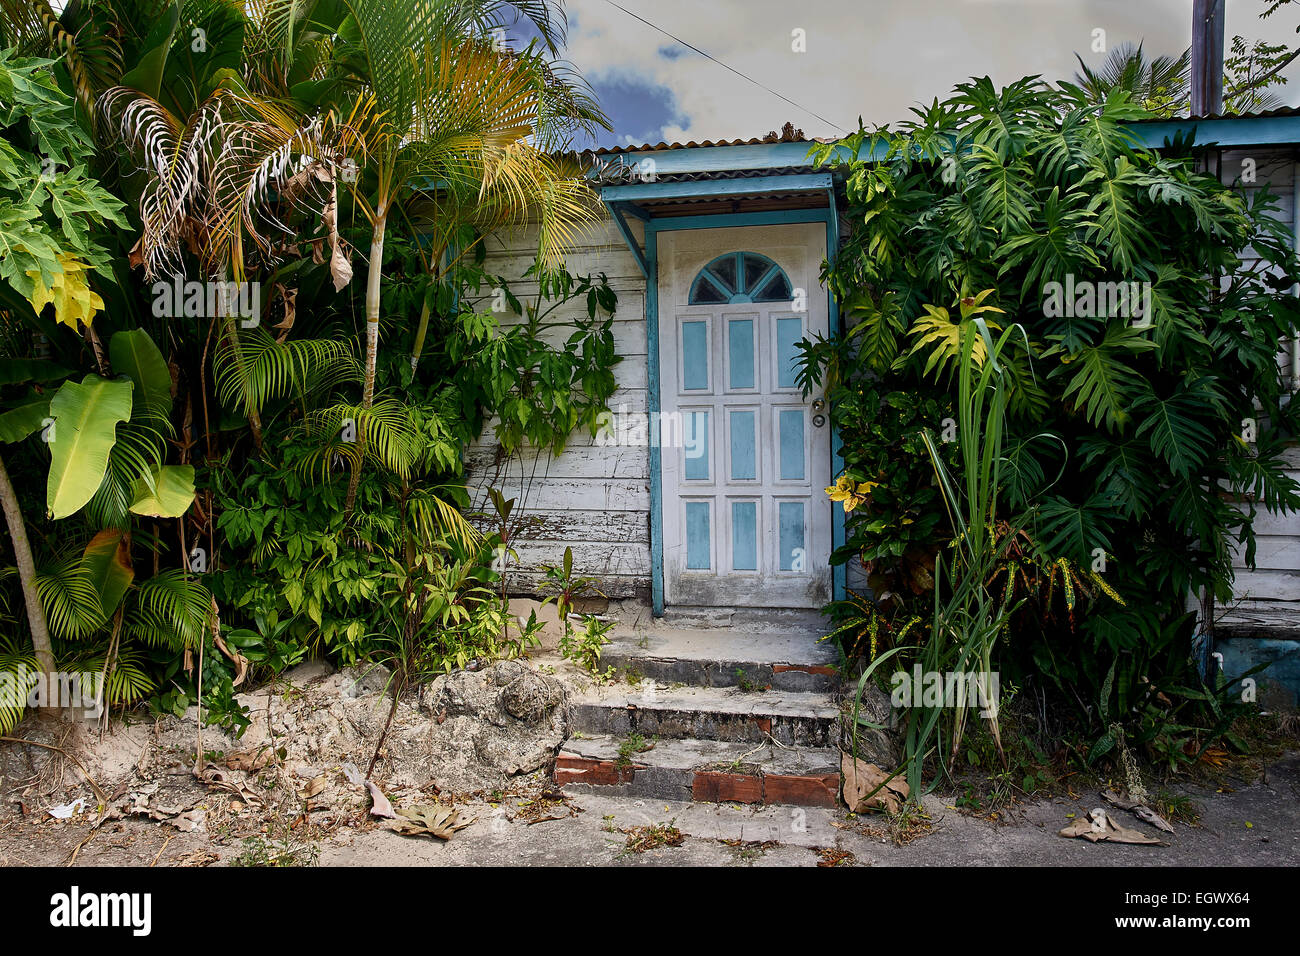 Chattel Home Front Of House With Just The Door Visible Shrubs And